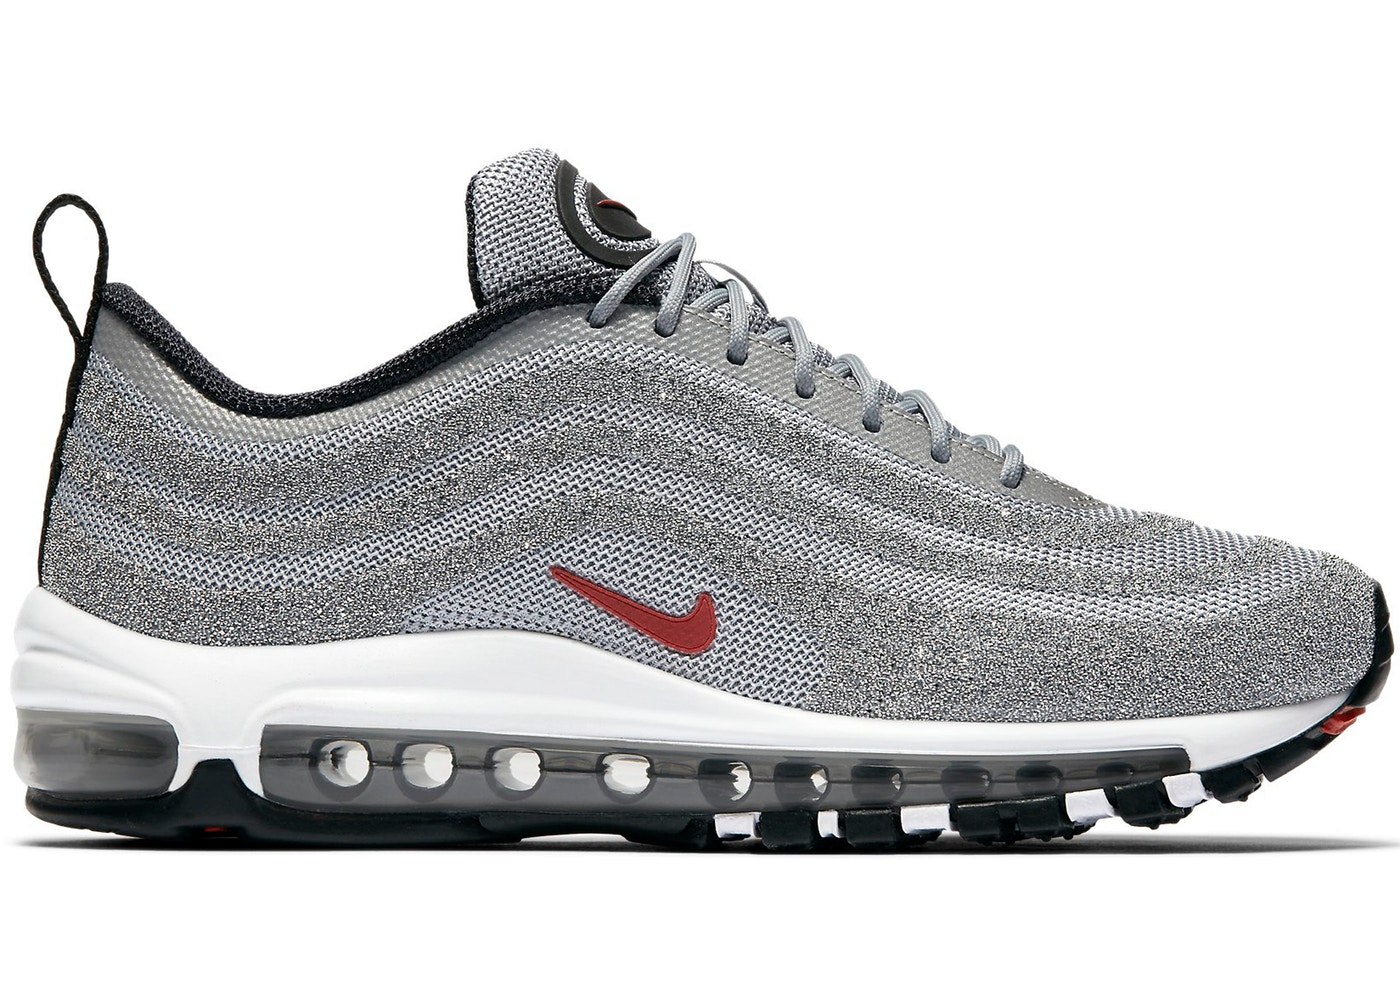 For Sale Nike Air Max 97 LX Silver Bullet